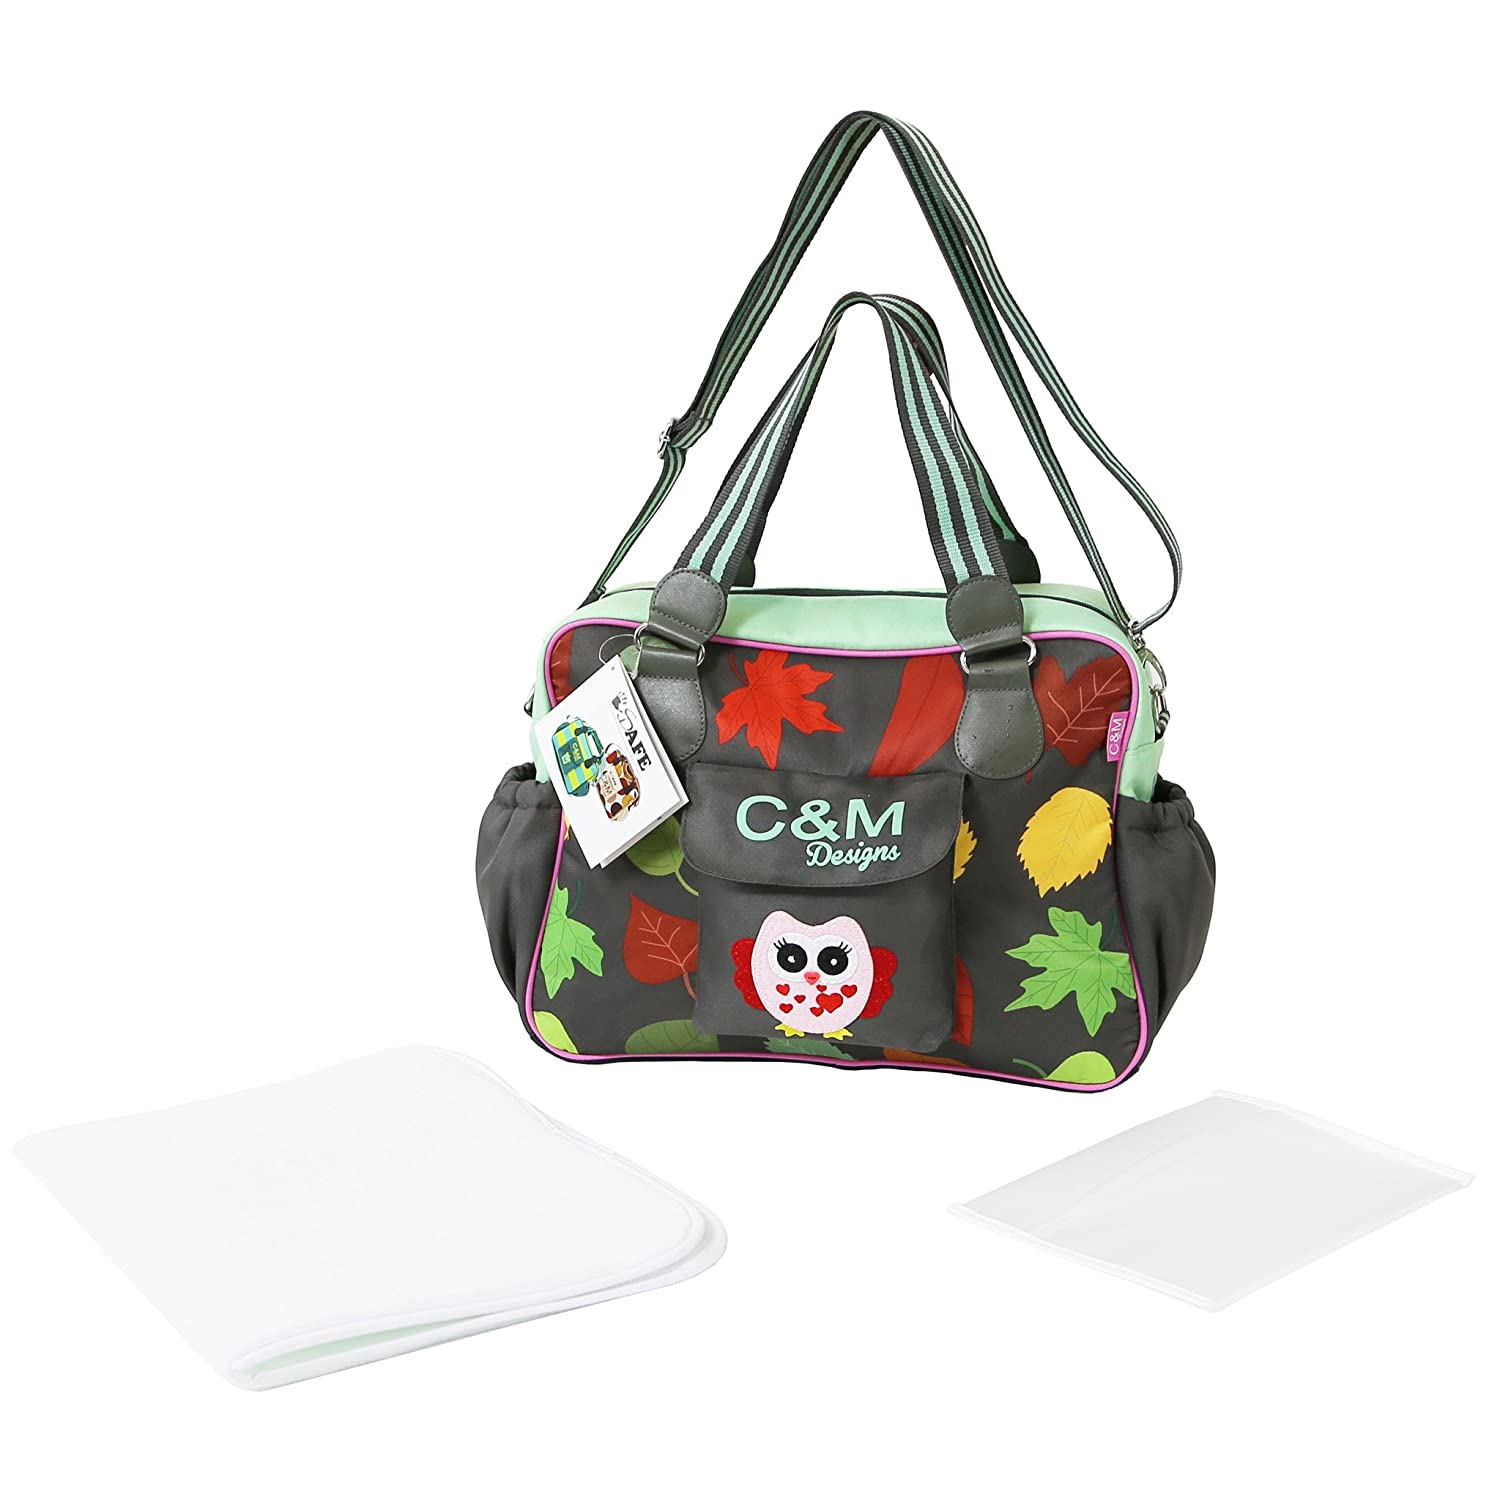 iSafe Changing Bag Luxury Quality (New Design) - Owl & Button iSRed